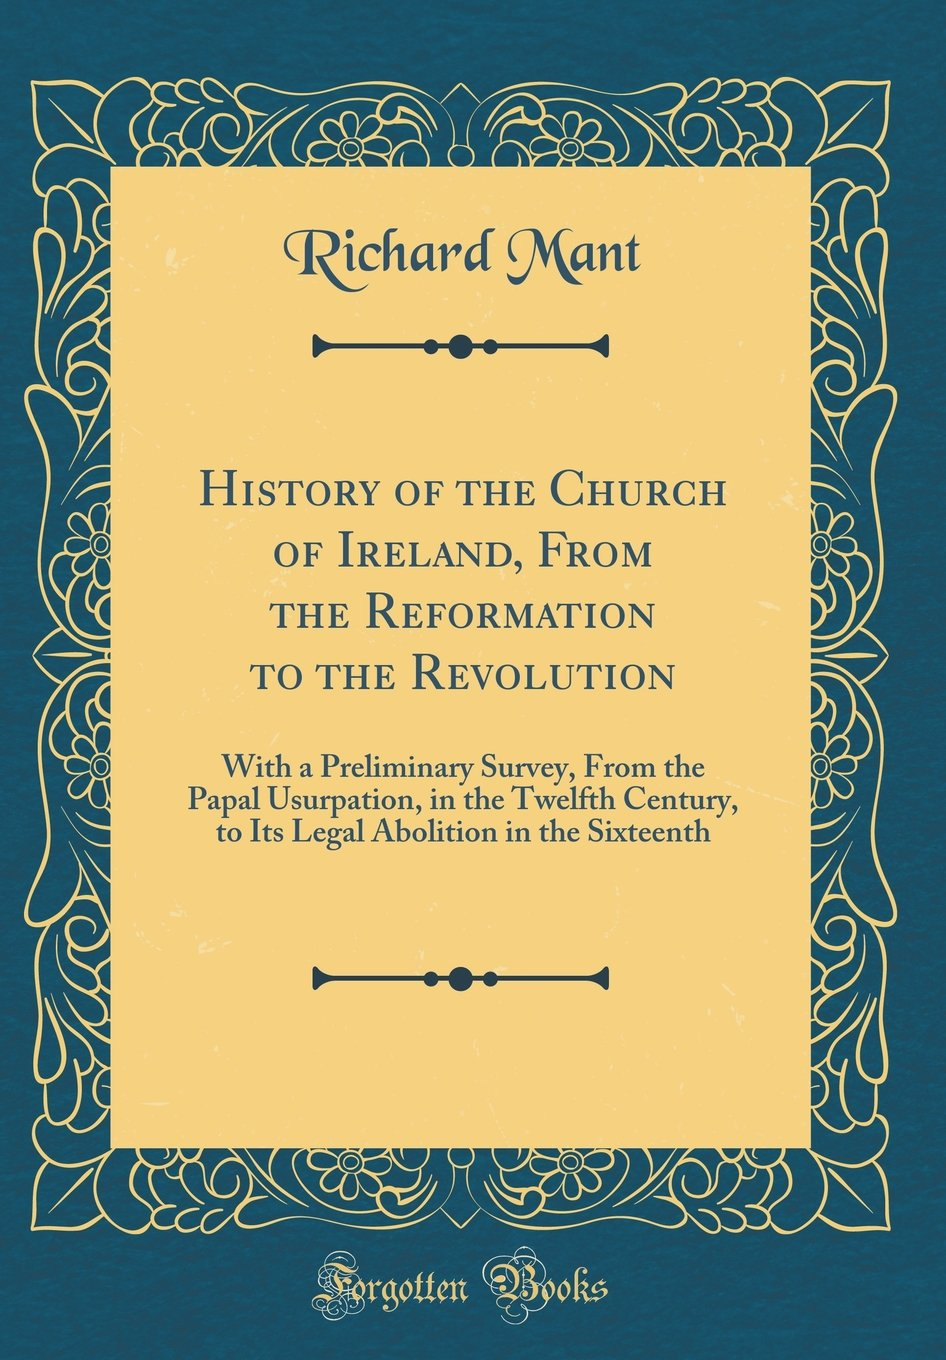 Download History of the Church of Ireland, from the Reformation to the Revolution: With a Preliminary Survey, from the Papal Usurpation, in the Twelfth ... Abolition in the Sixteenth (Classic Reprint) pdf epub